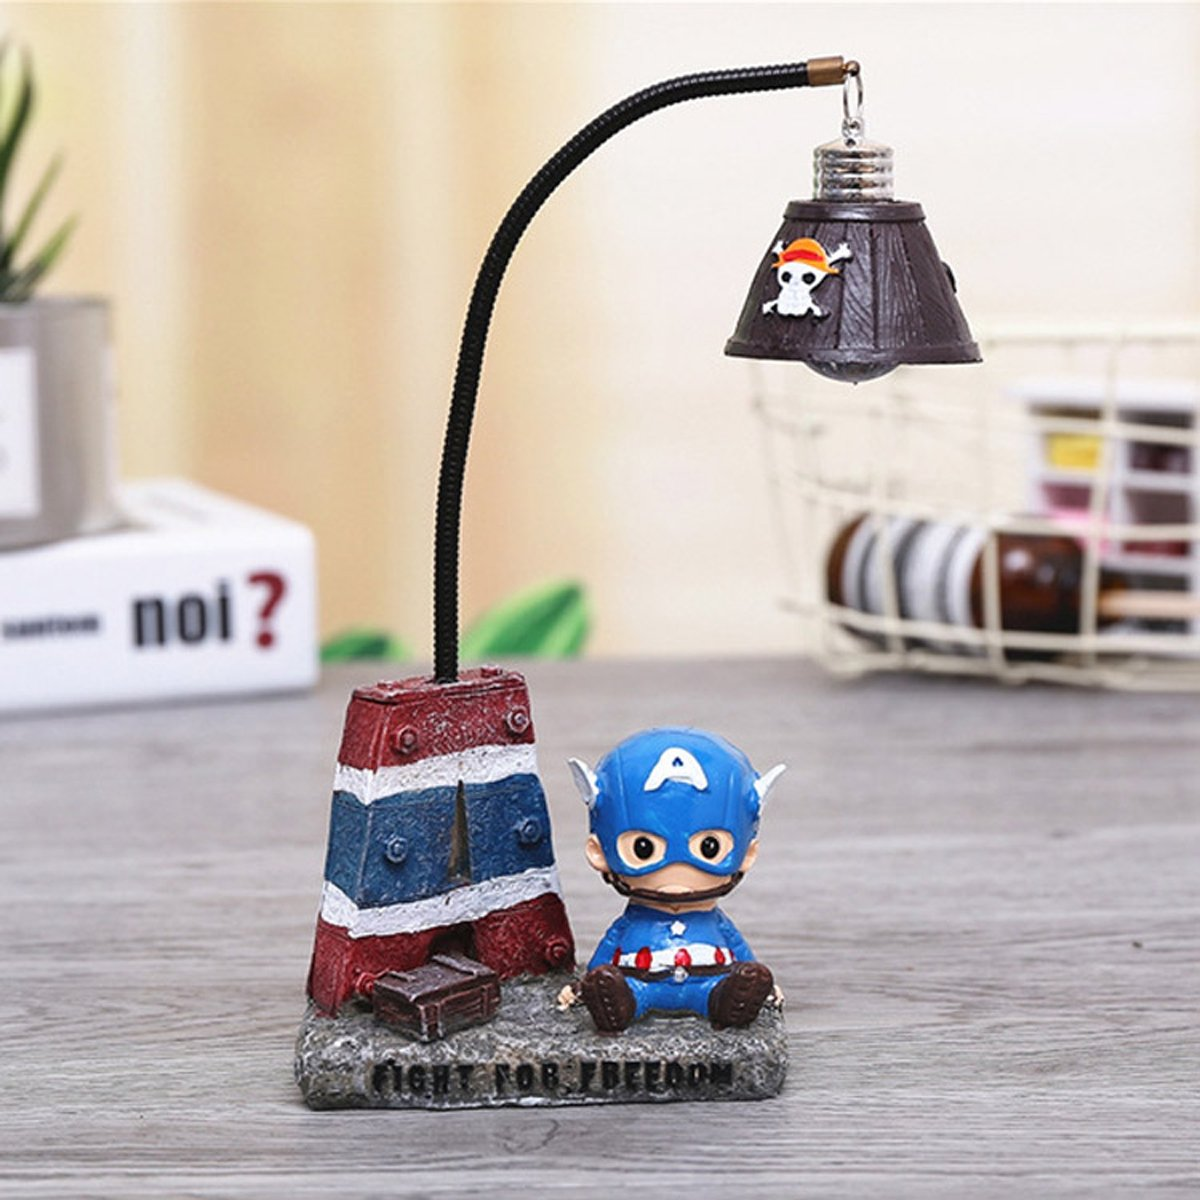 YOURNELO Cute Animals Cartoon Character Marvel Heroes Desk Ornaments Night Light Lamp for Gift (Captain America 1) by YOURNELO